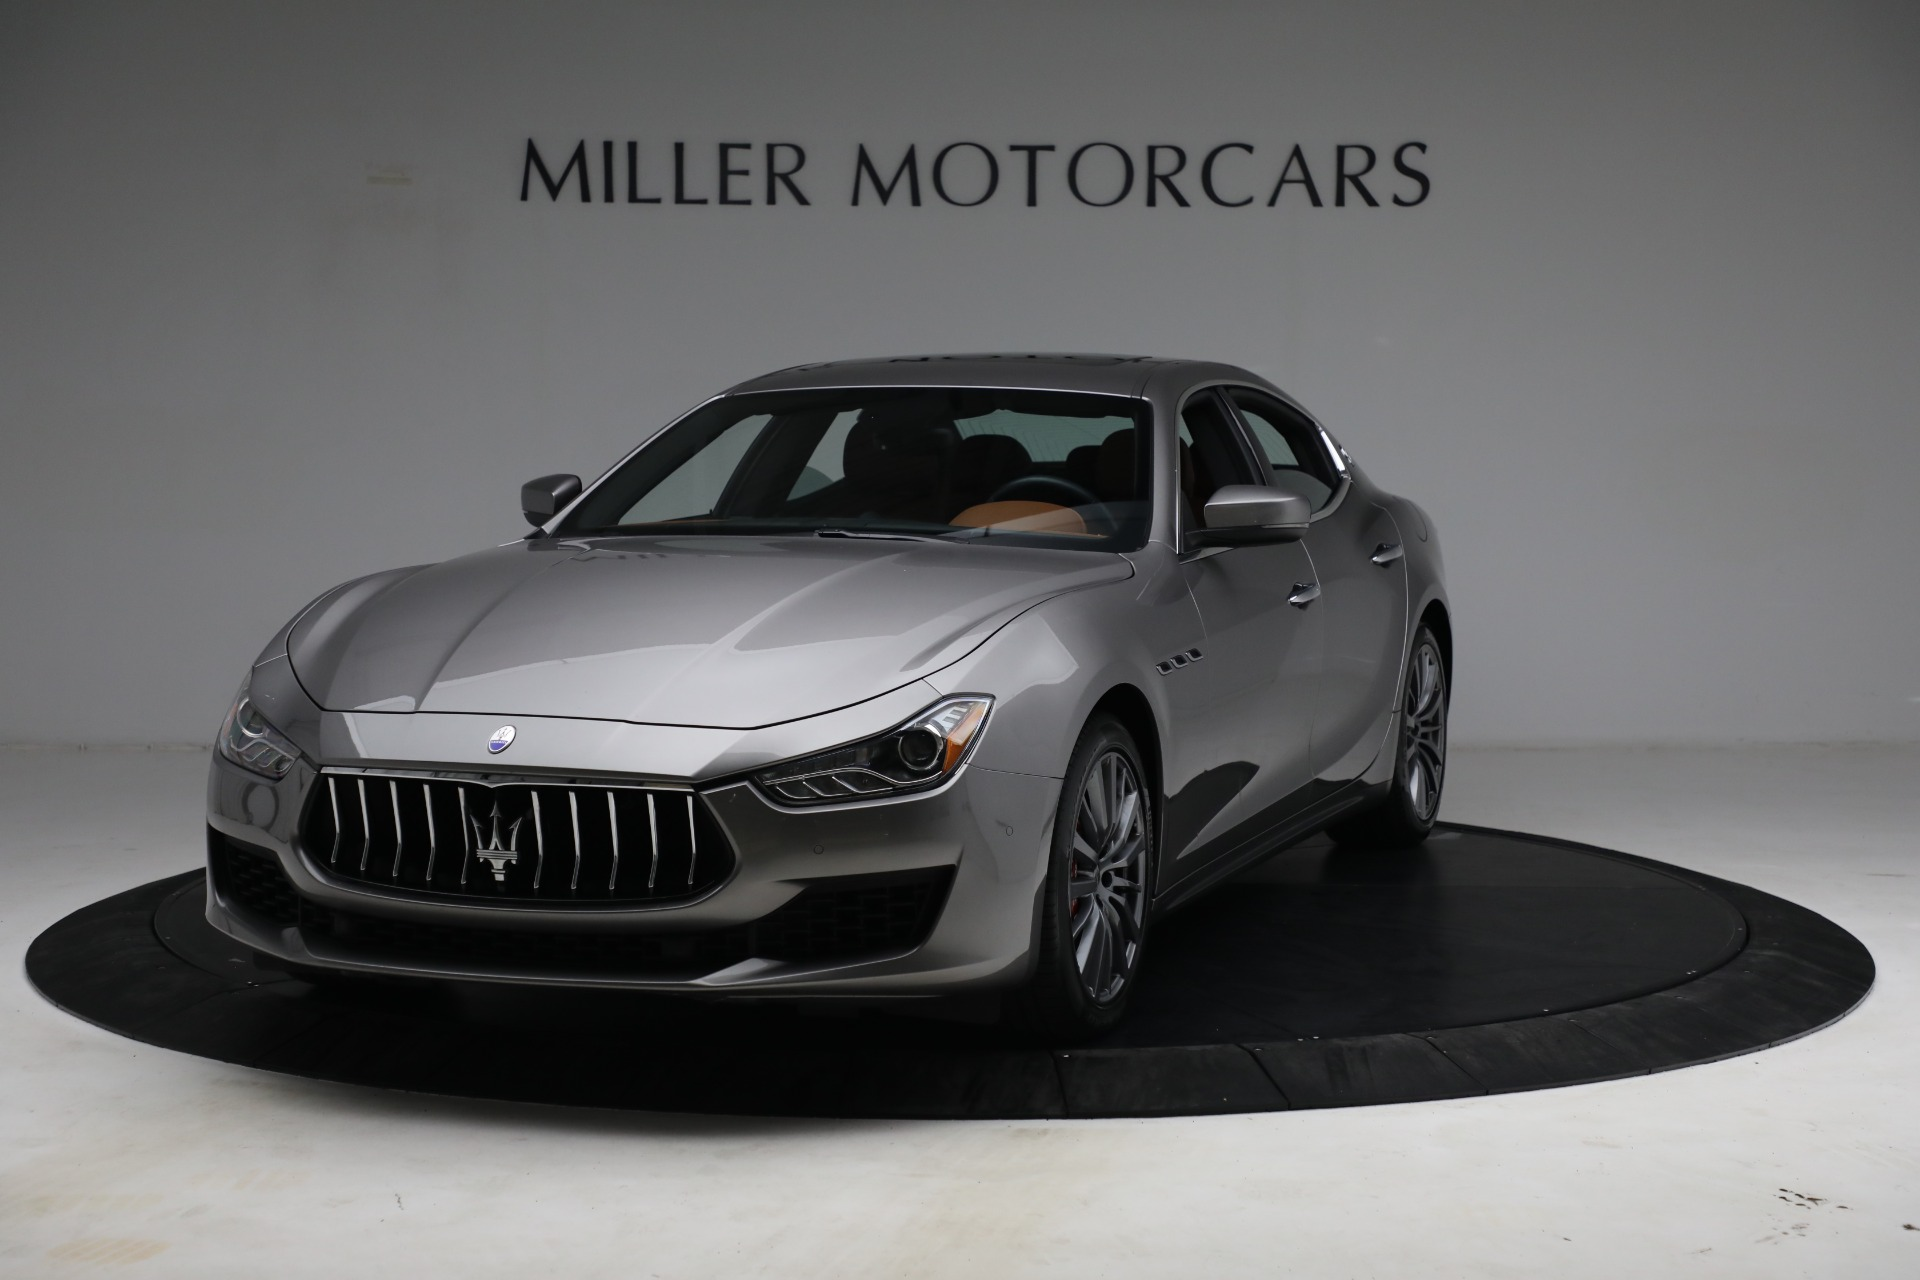 Used 2018 Maserati Ghibli S Q4 for sale $54,900 at Bentley Greenwich in Greenwich CT 06830 1